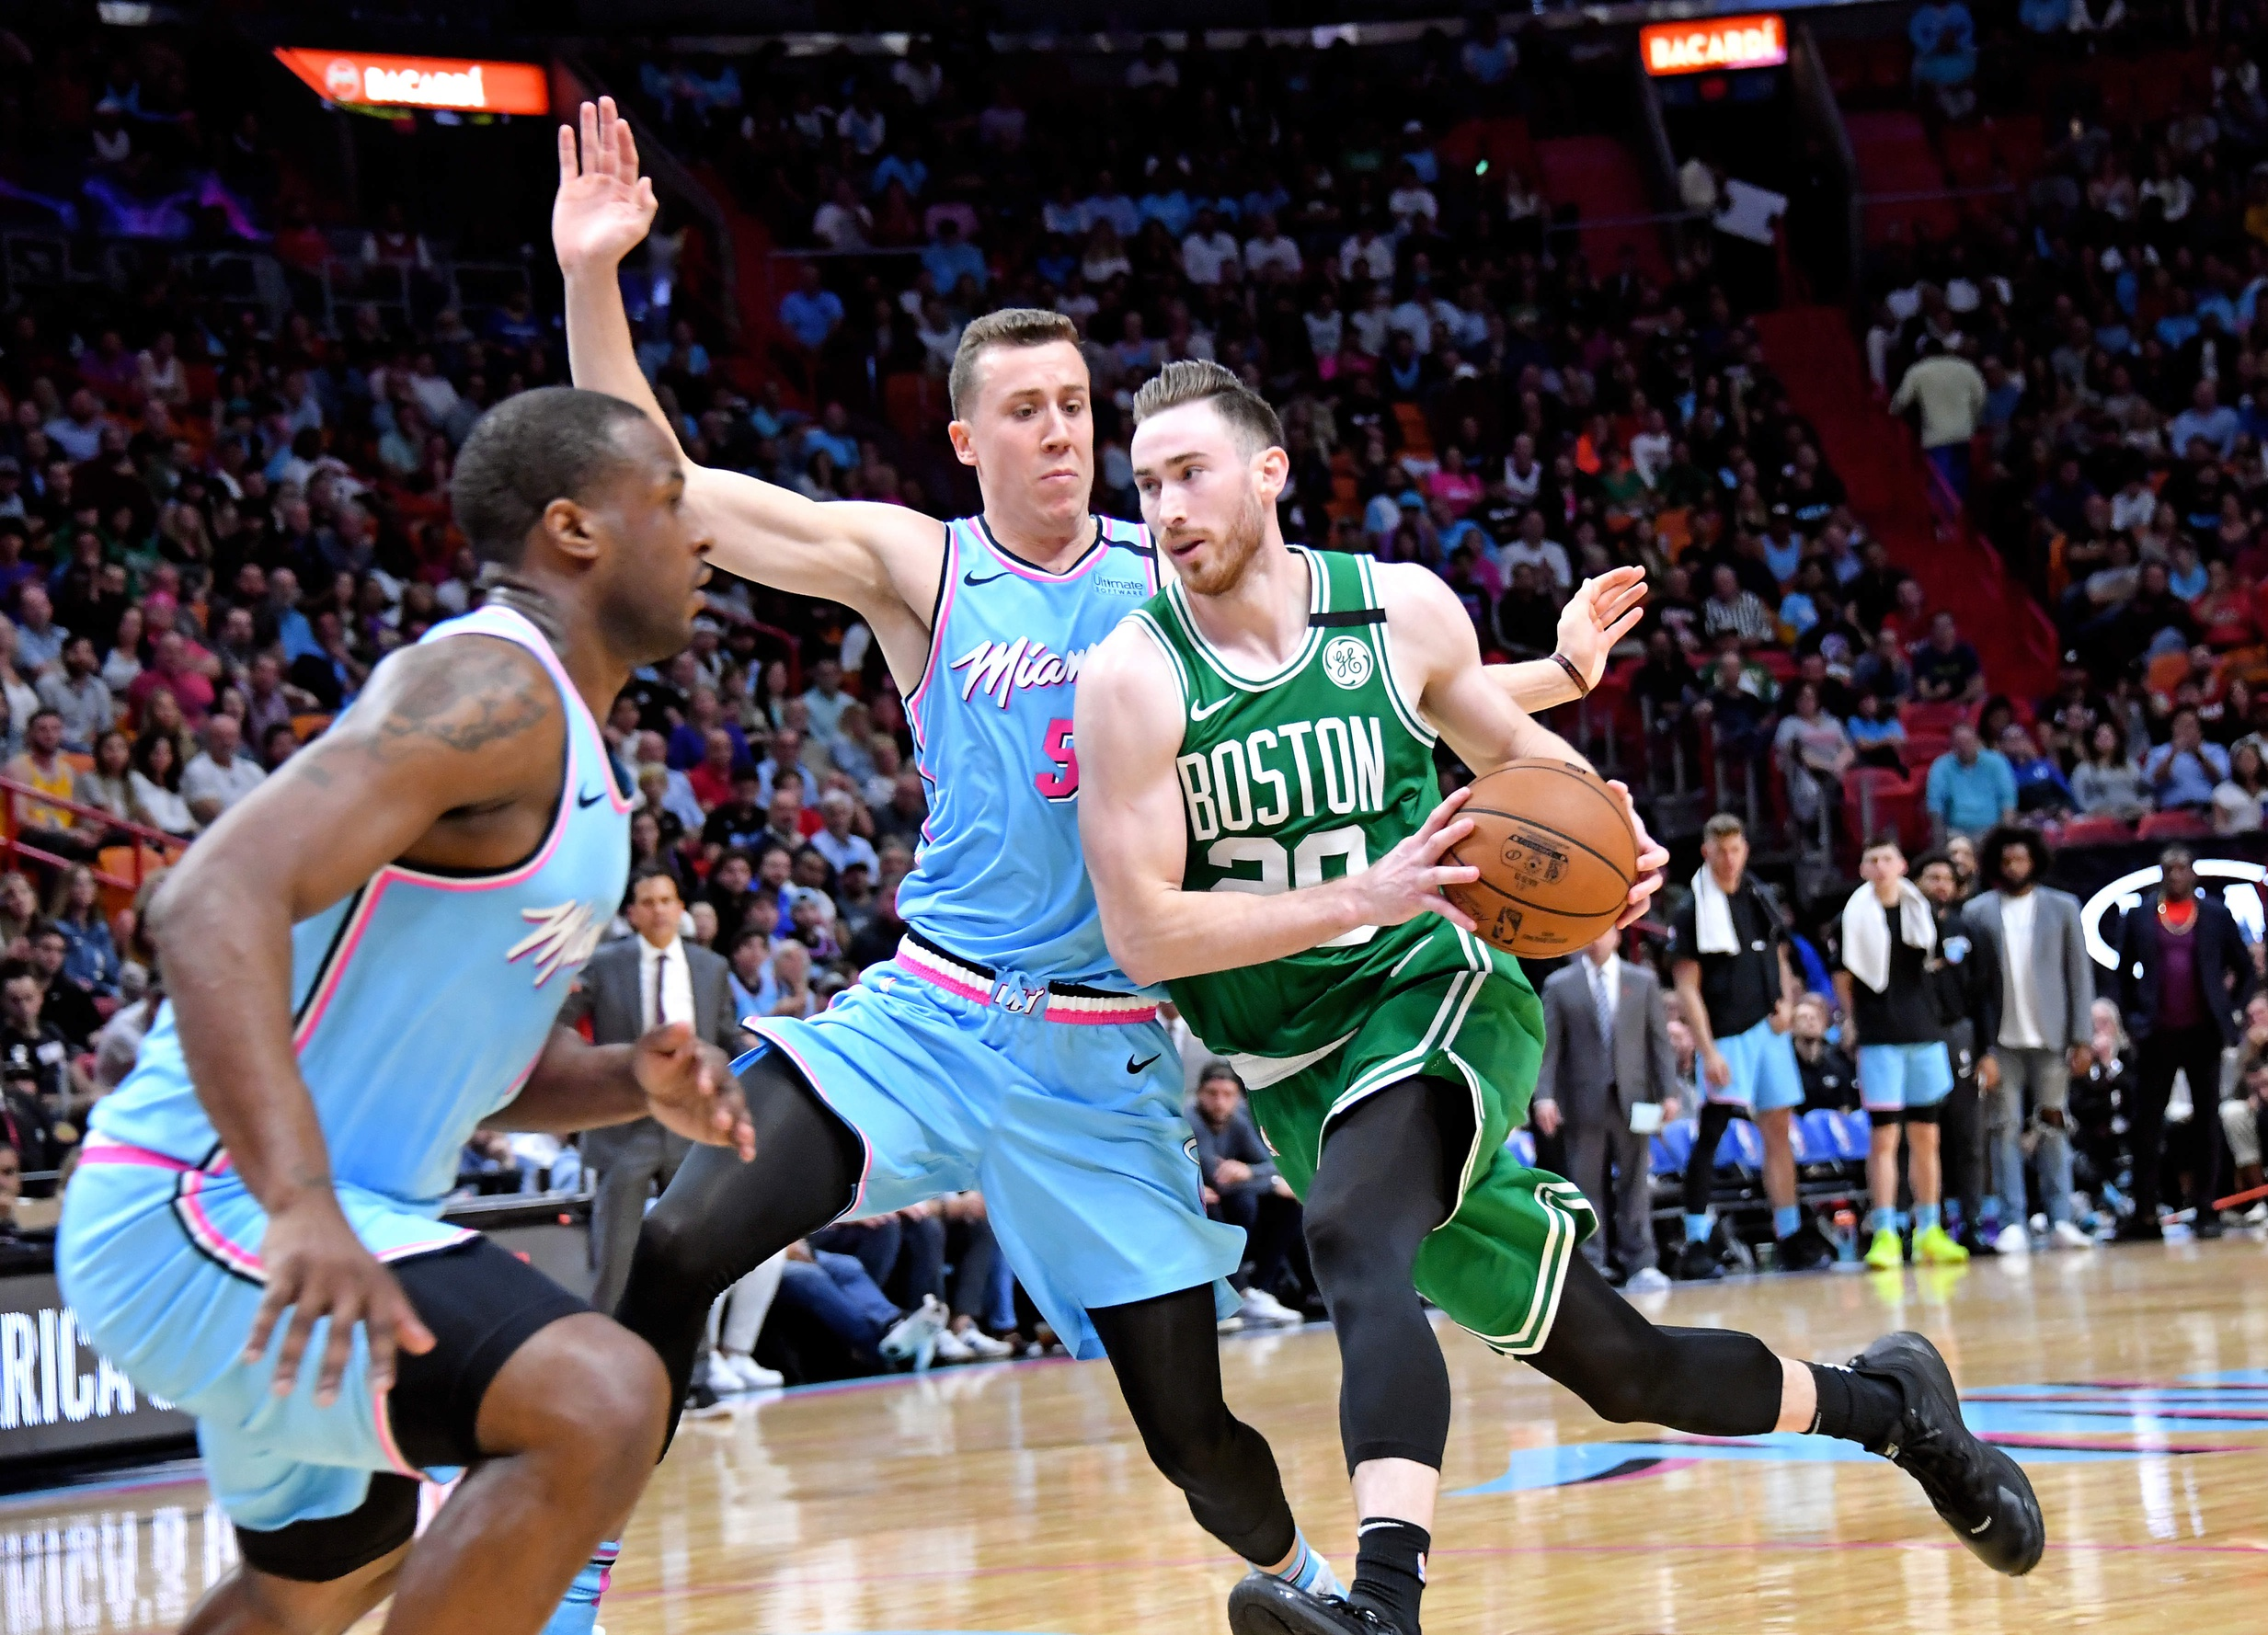 Miami Heat fall for just the third time at home in 109-101 loss to Boston